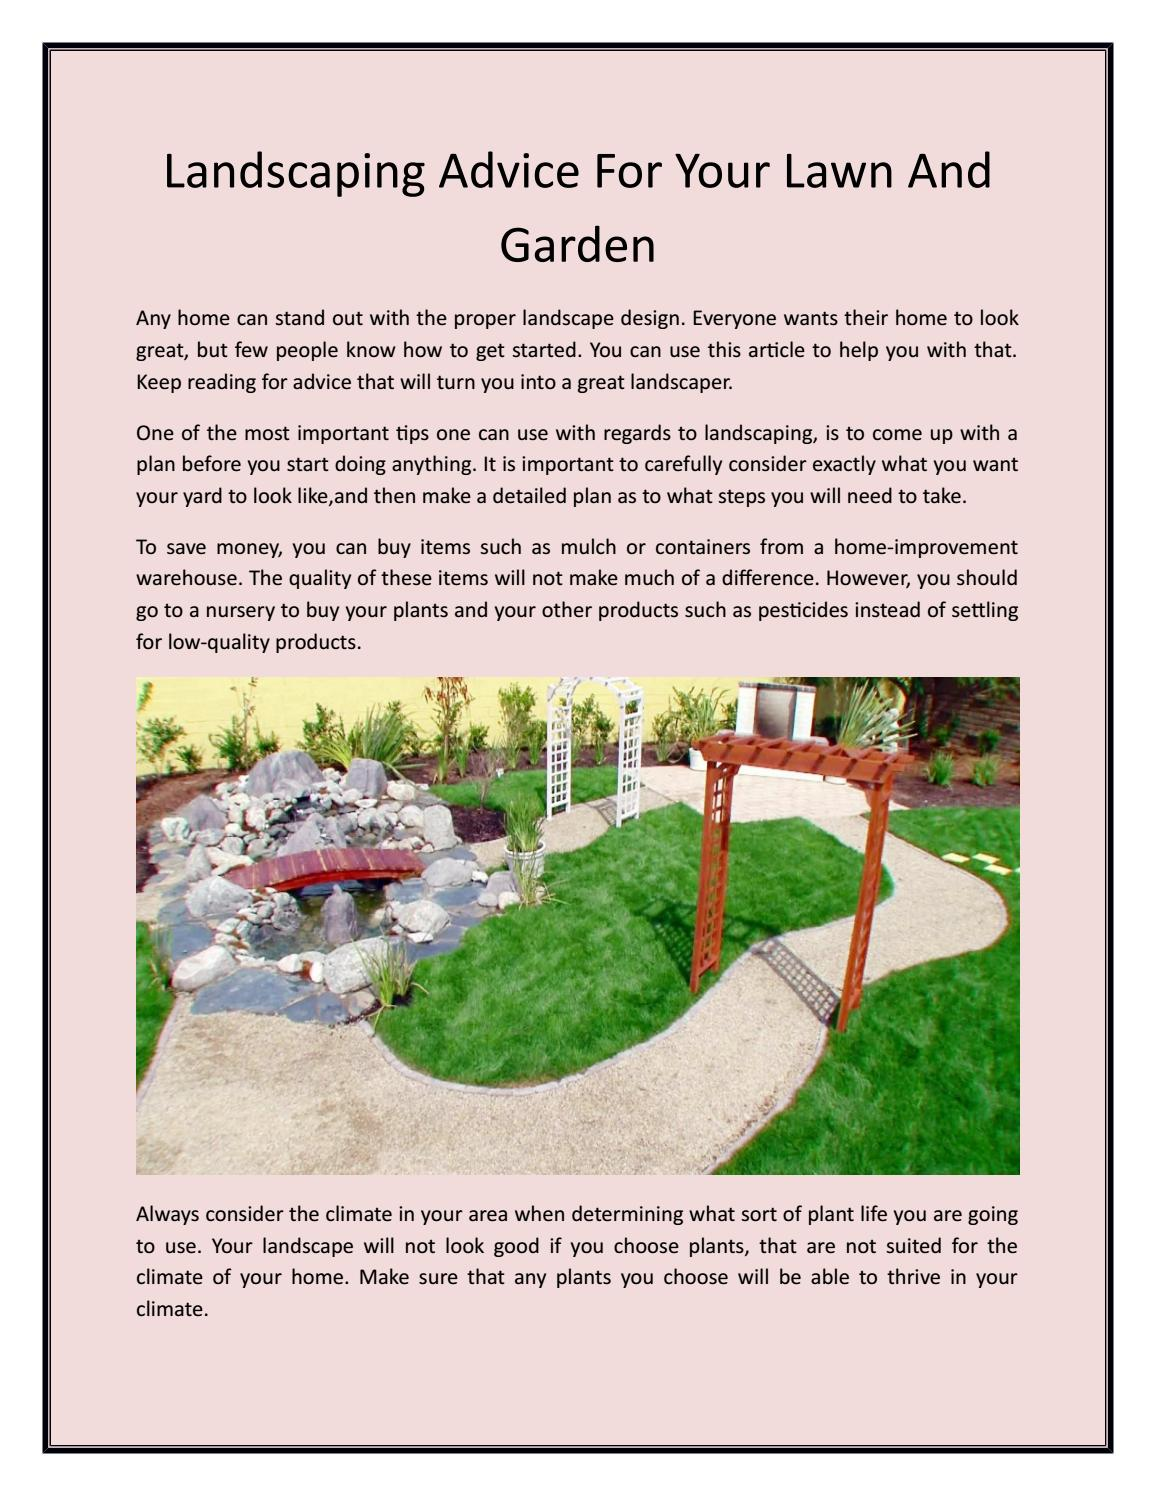 Landscaping Advice For Your Lawn And Garden By Johnson S